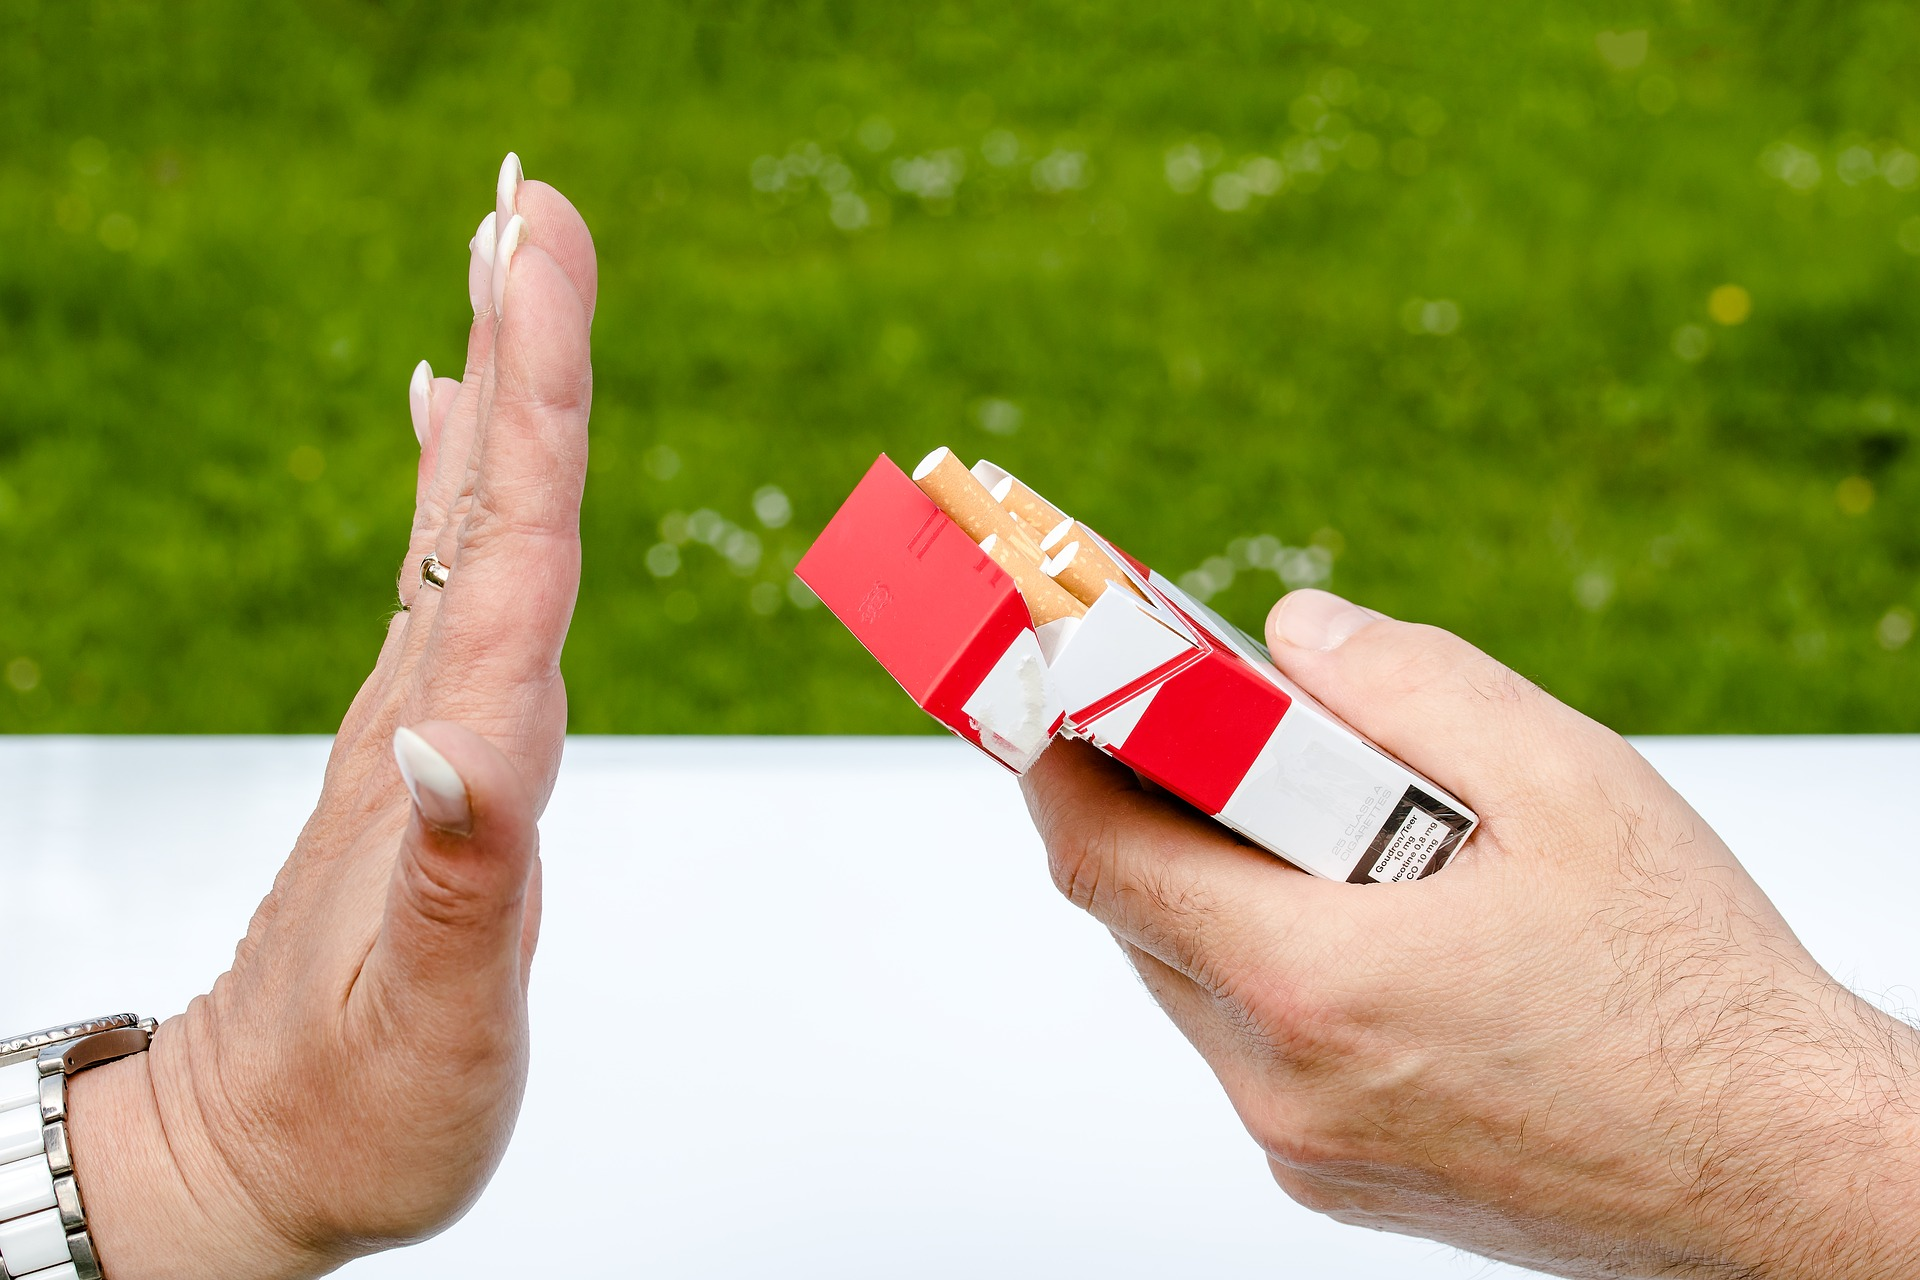 Link to the page about support for people who want to quit smoking